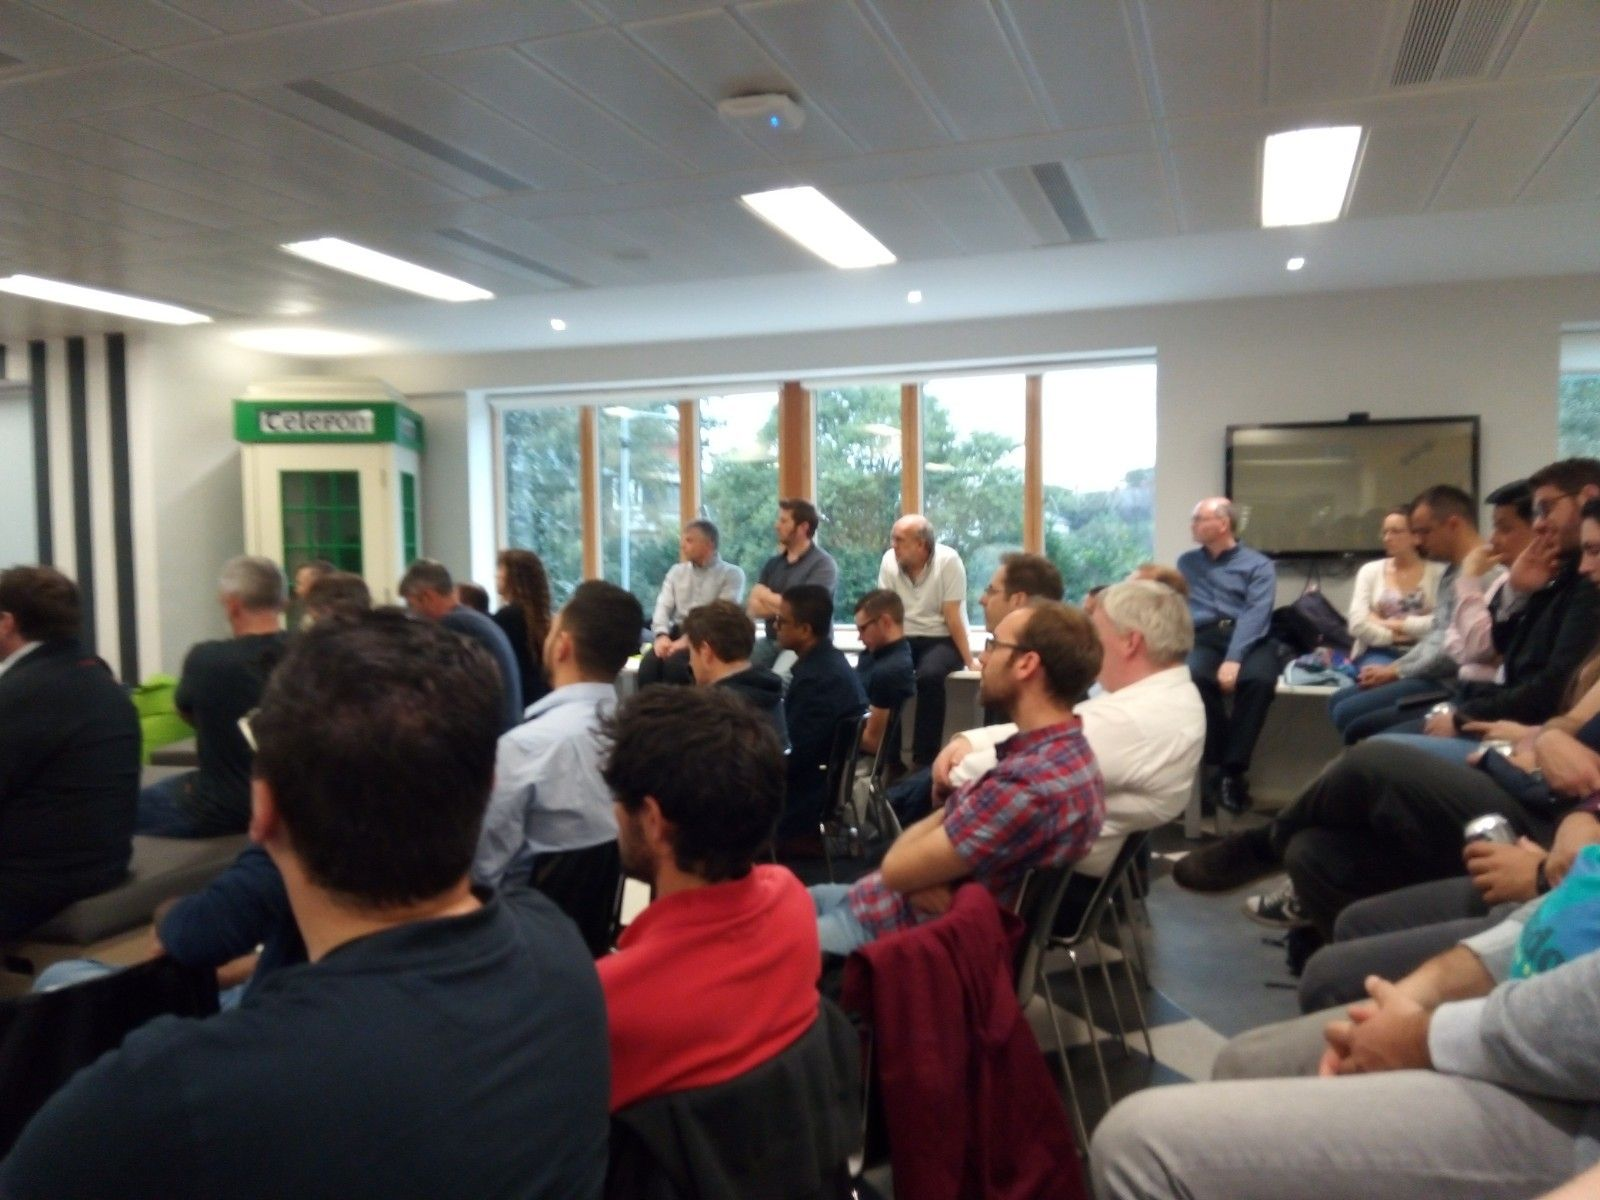 Dublin μServices (Microservices) User Group